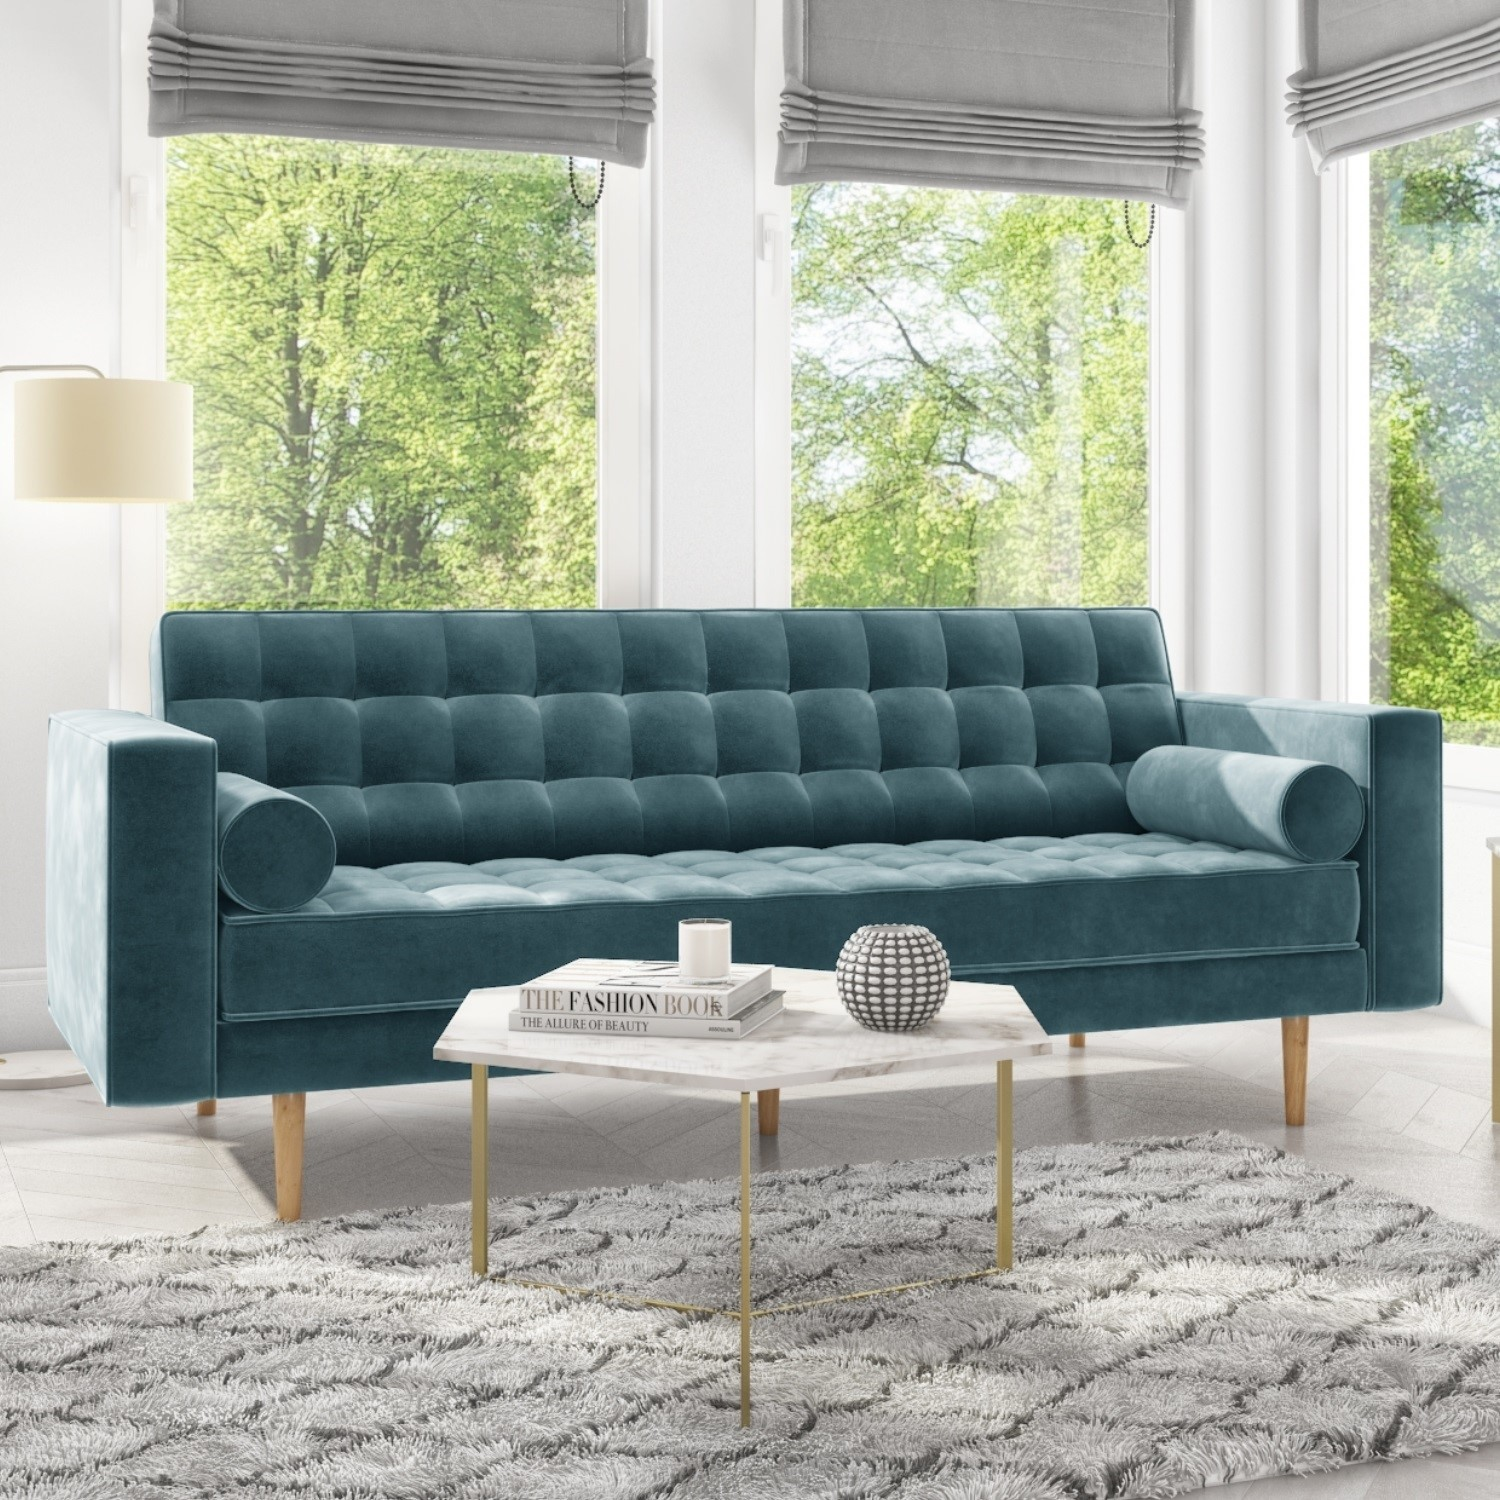 Picture of: Buttoned Light Blue Sofa 3 Seater With Cushions Elba Furniture123